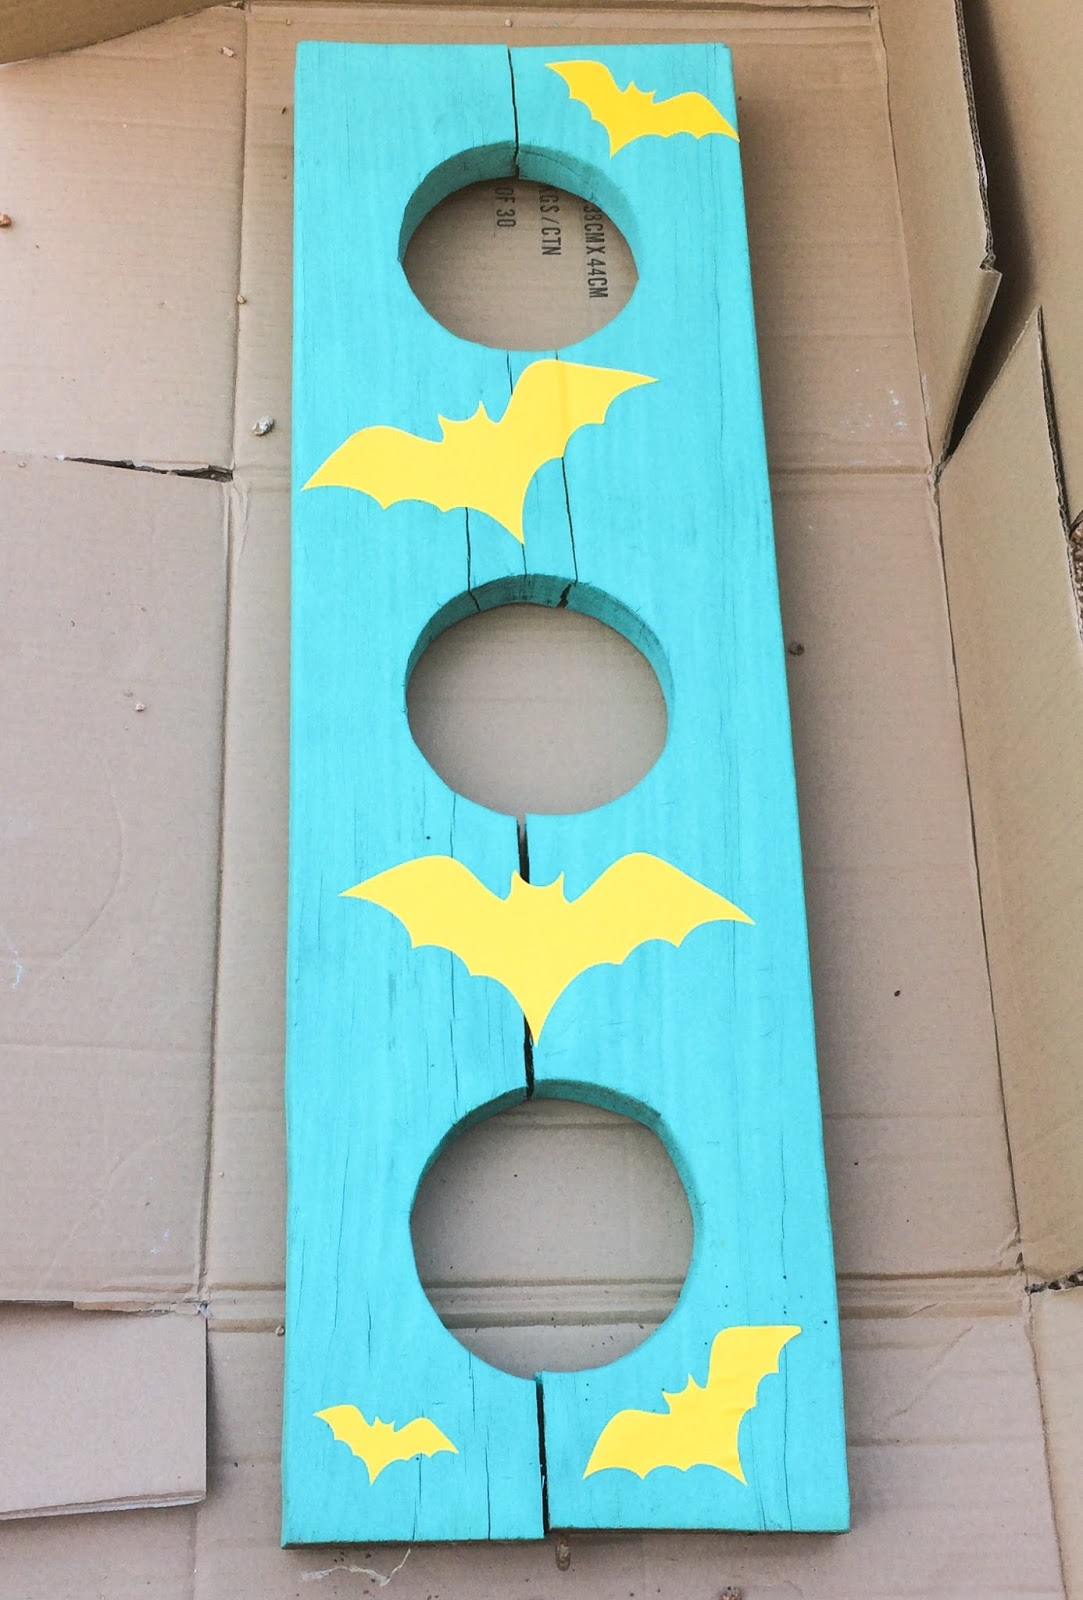 Phenomenal Diy It Halloween Bean Bag Toss A Kailo Chic Life Onthecornerstone Fun Painted Chair Ideas Images Onthecornerstoneorg